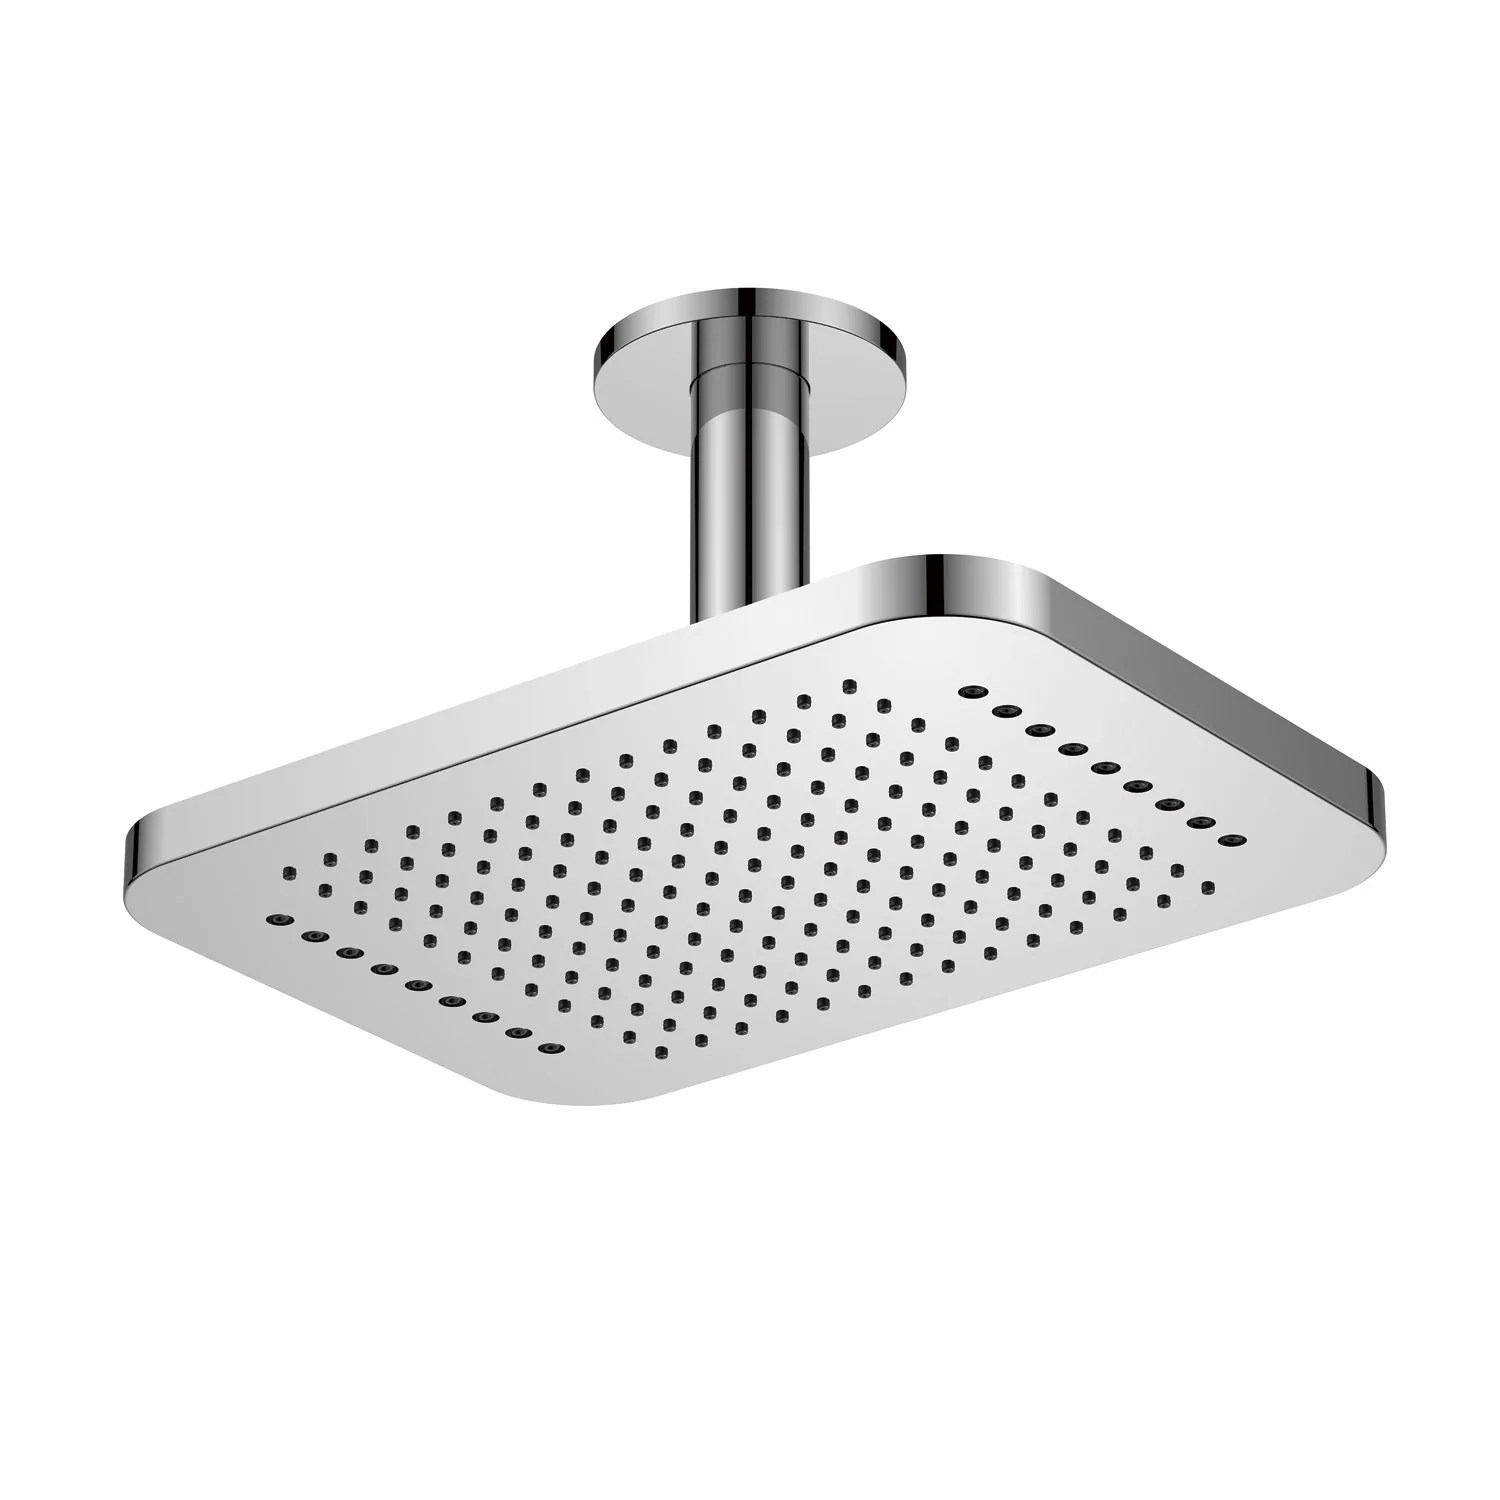 Dax Ceiling Mounted Square Rain Shower Head With Shower Arm Brushed Nickel Finish 12 1 4 X 11 16 Inches Dax B16 Bn